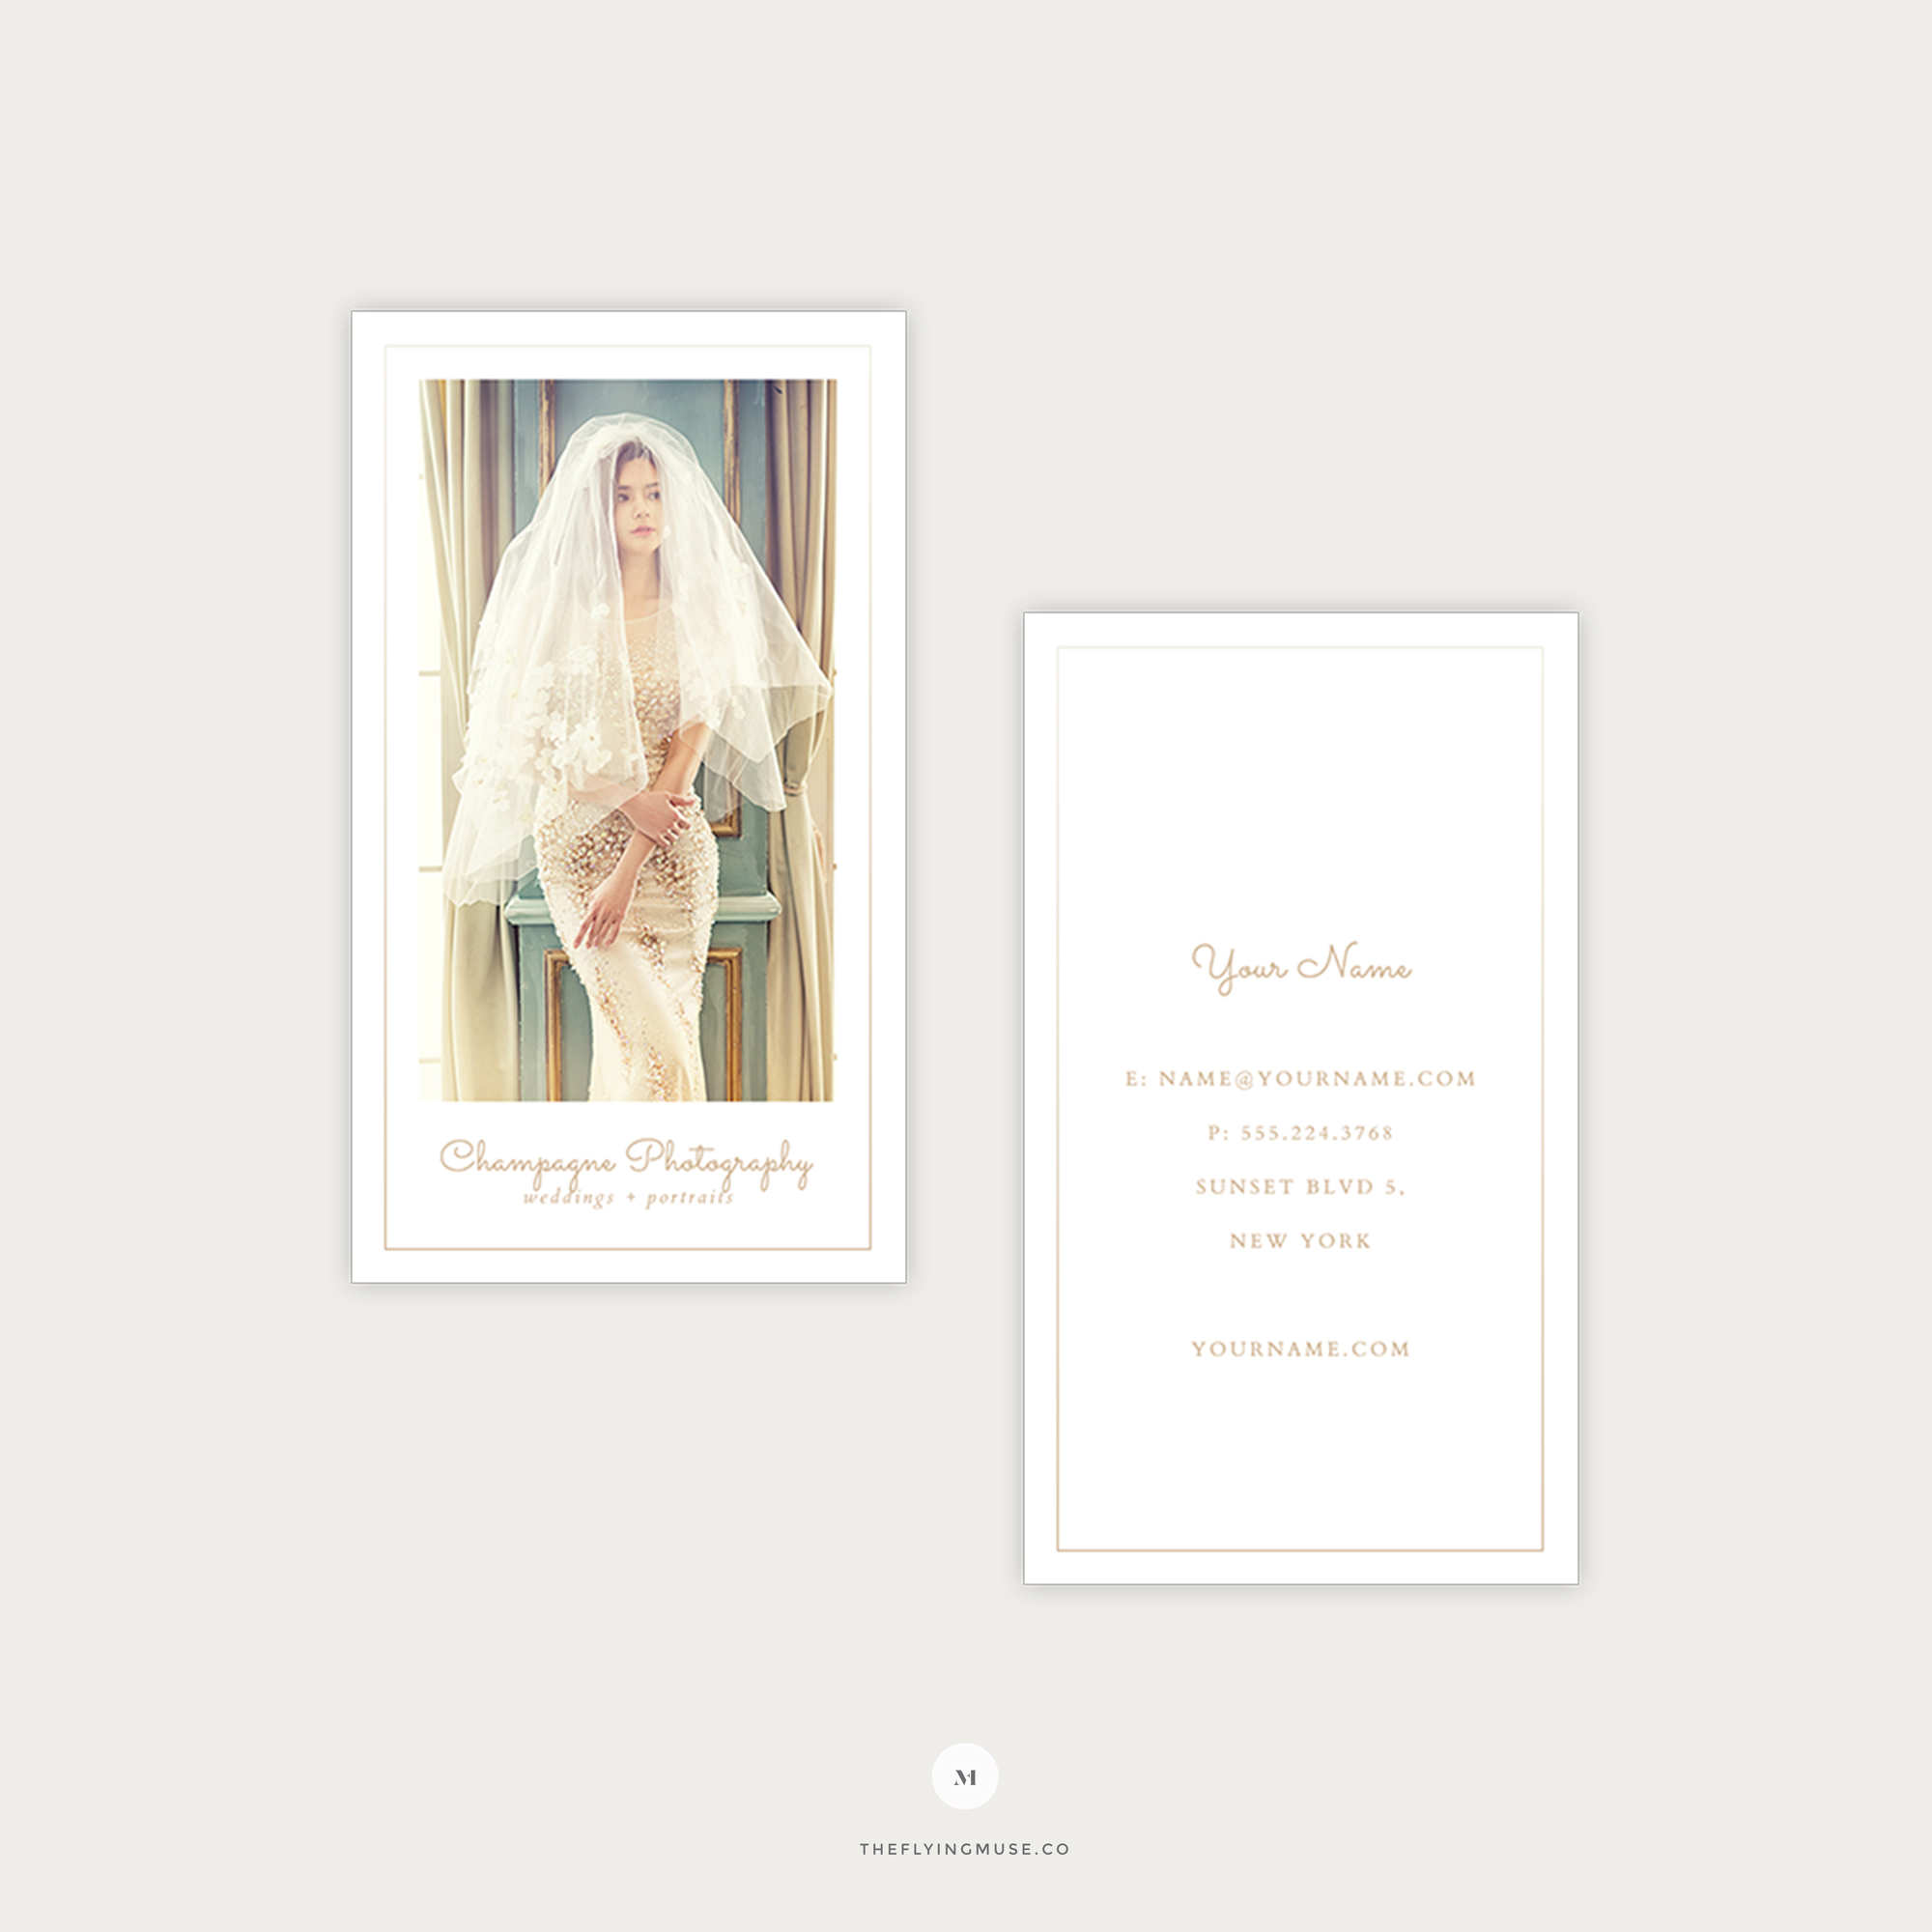 Minimal vertical wedding photography business cards champagne minimal vertical wedding photography business cards reheart Image collections